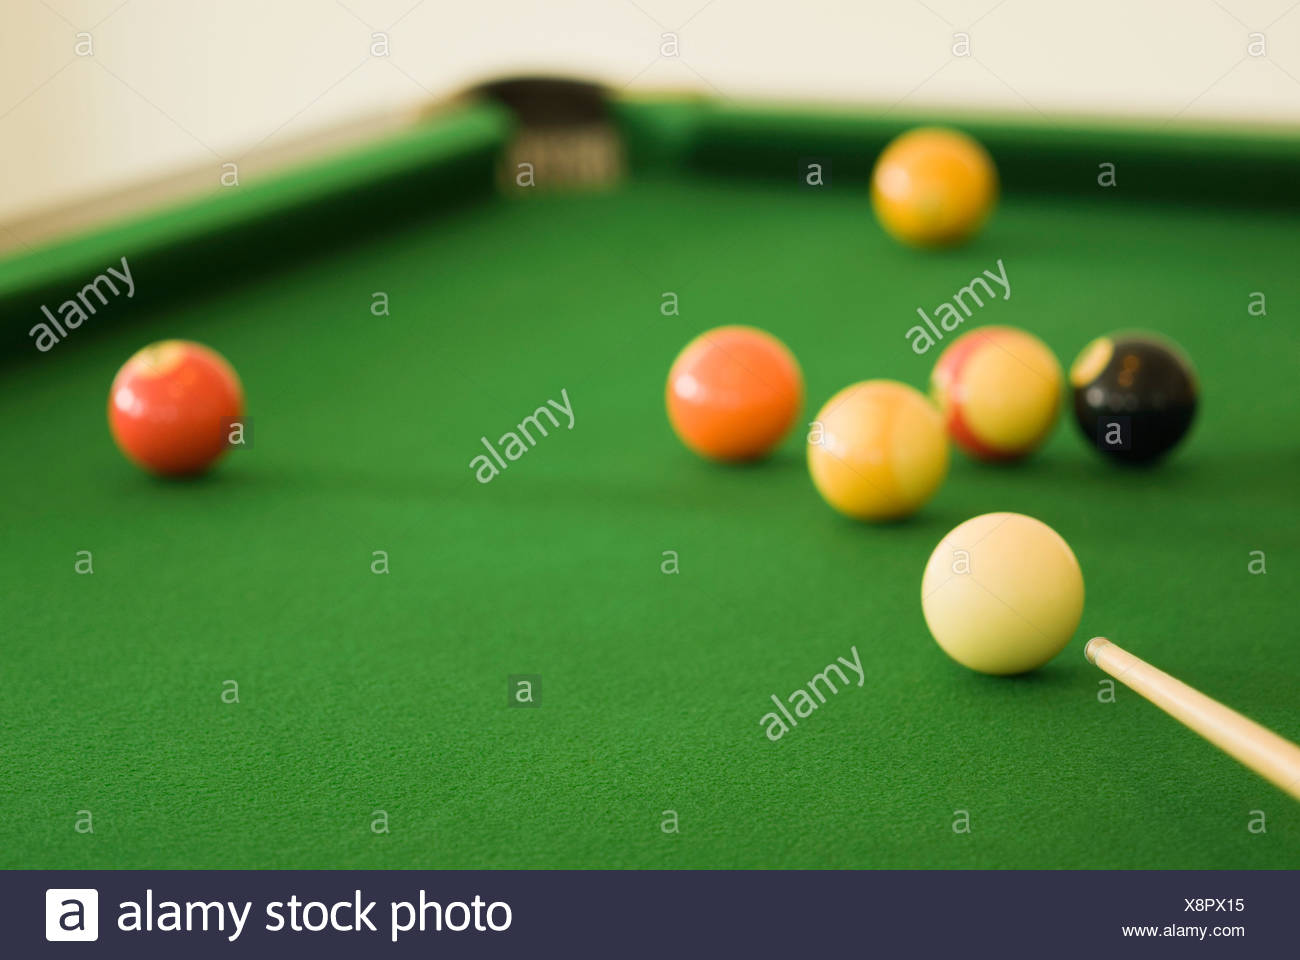 Close-up of a pool cue with pool balls on a pool table - Stock Image